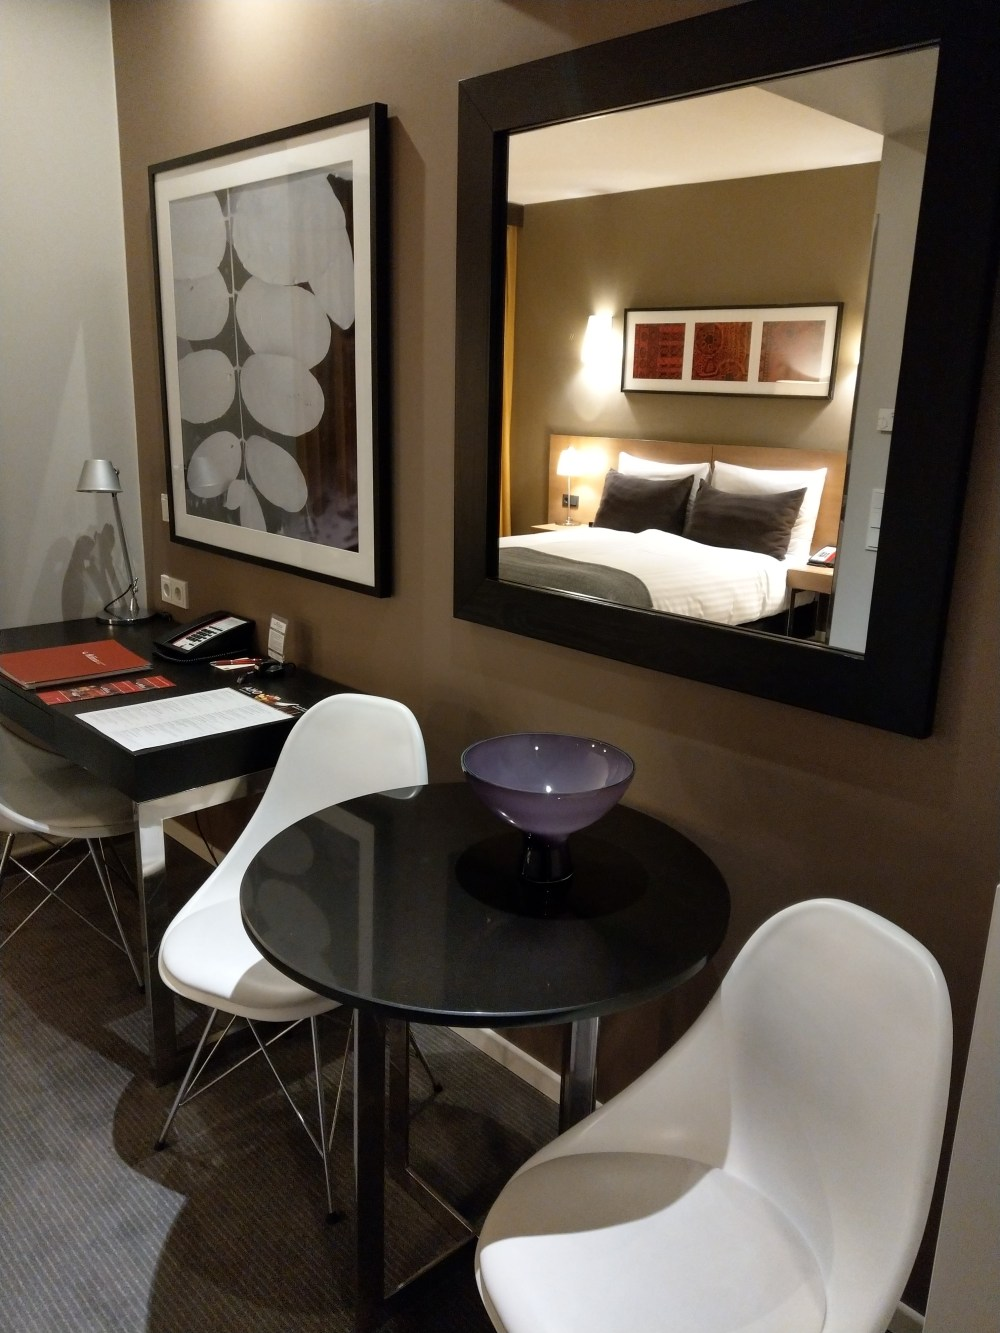 A hotel room at the adina apartment hotel berlin mitte. This picture is of the table and two chairs. In the mirror you can see a double bed